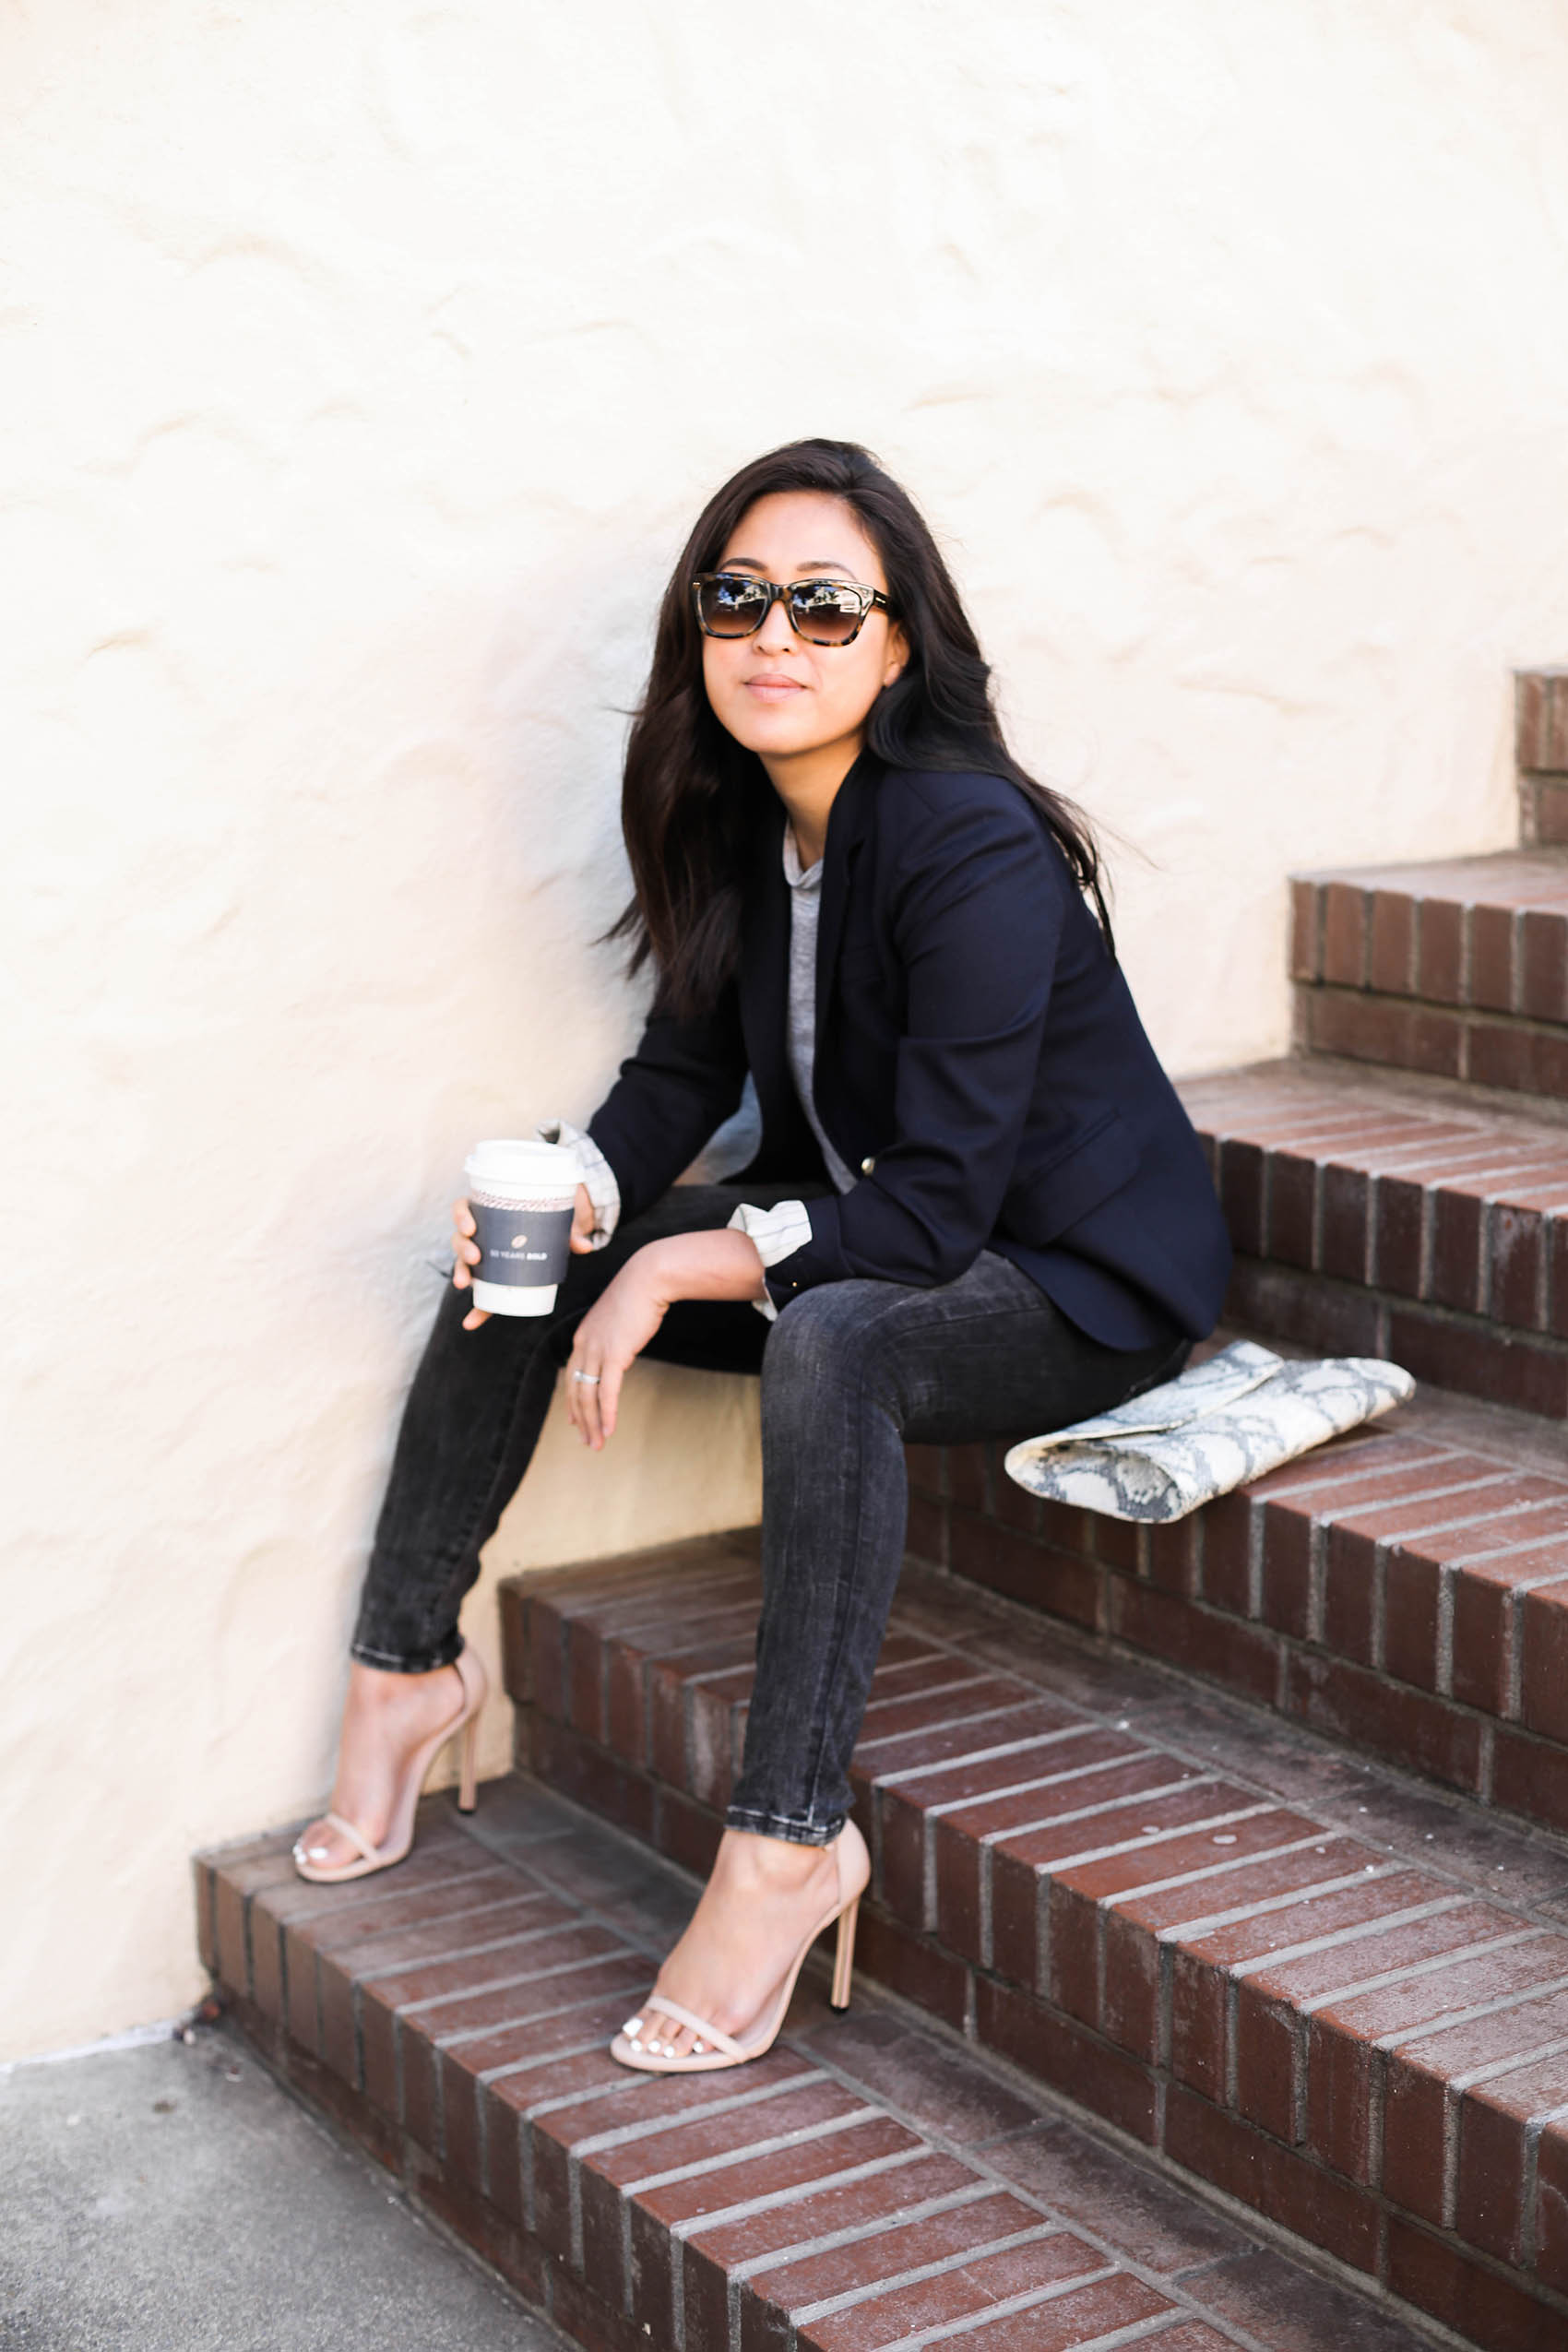 j crew schoolboy blazer for easy day to night style | via @victoriamstudio